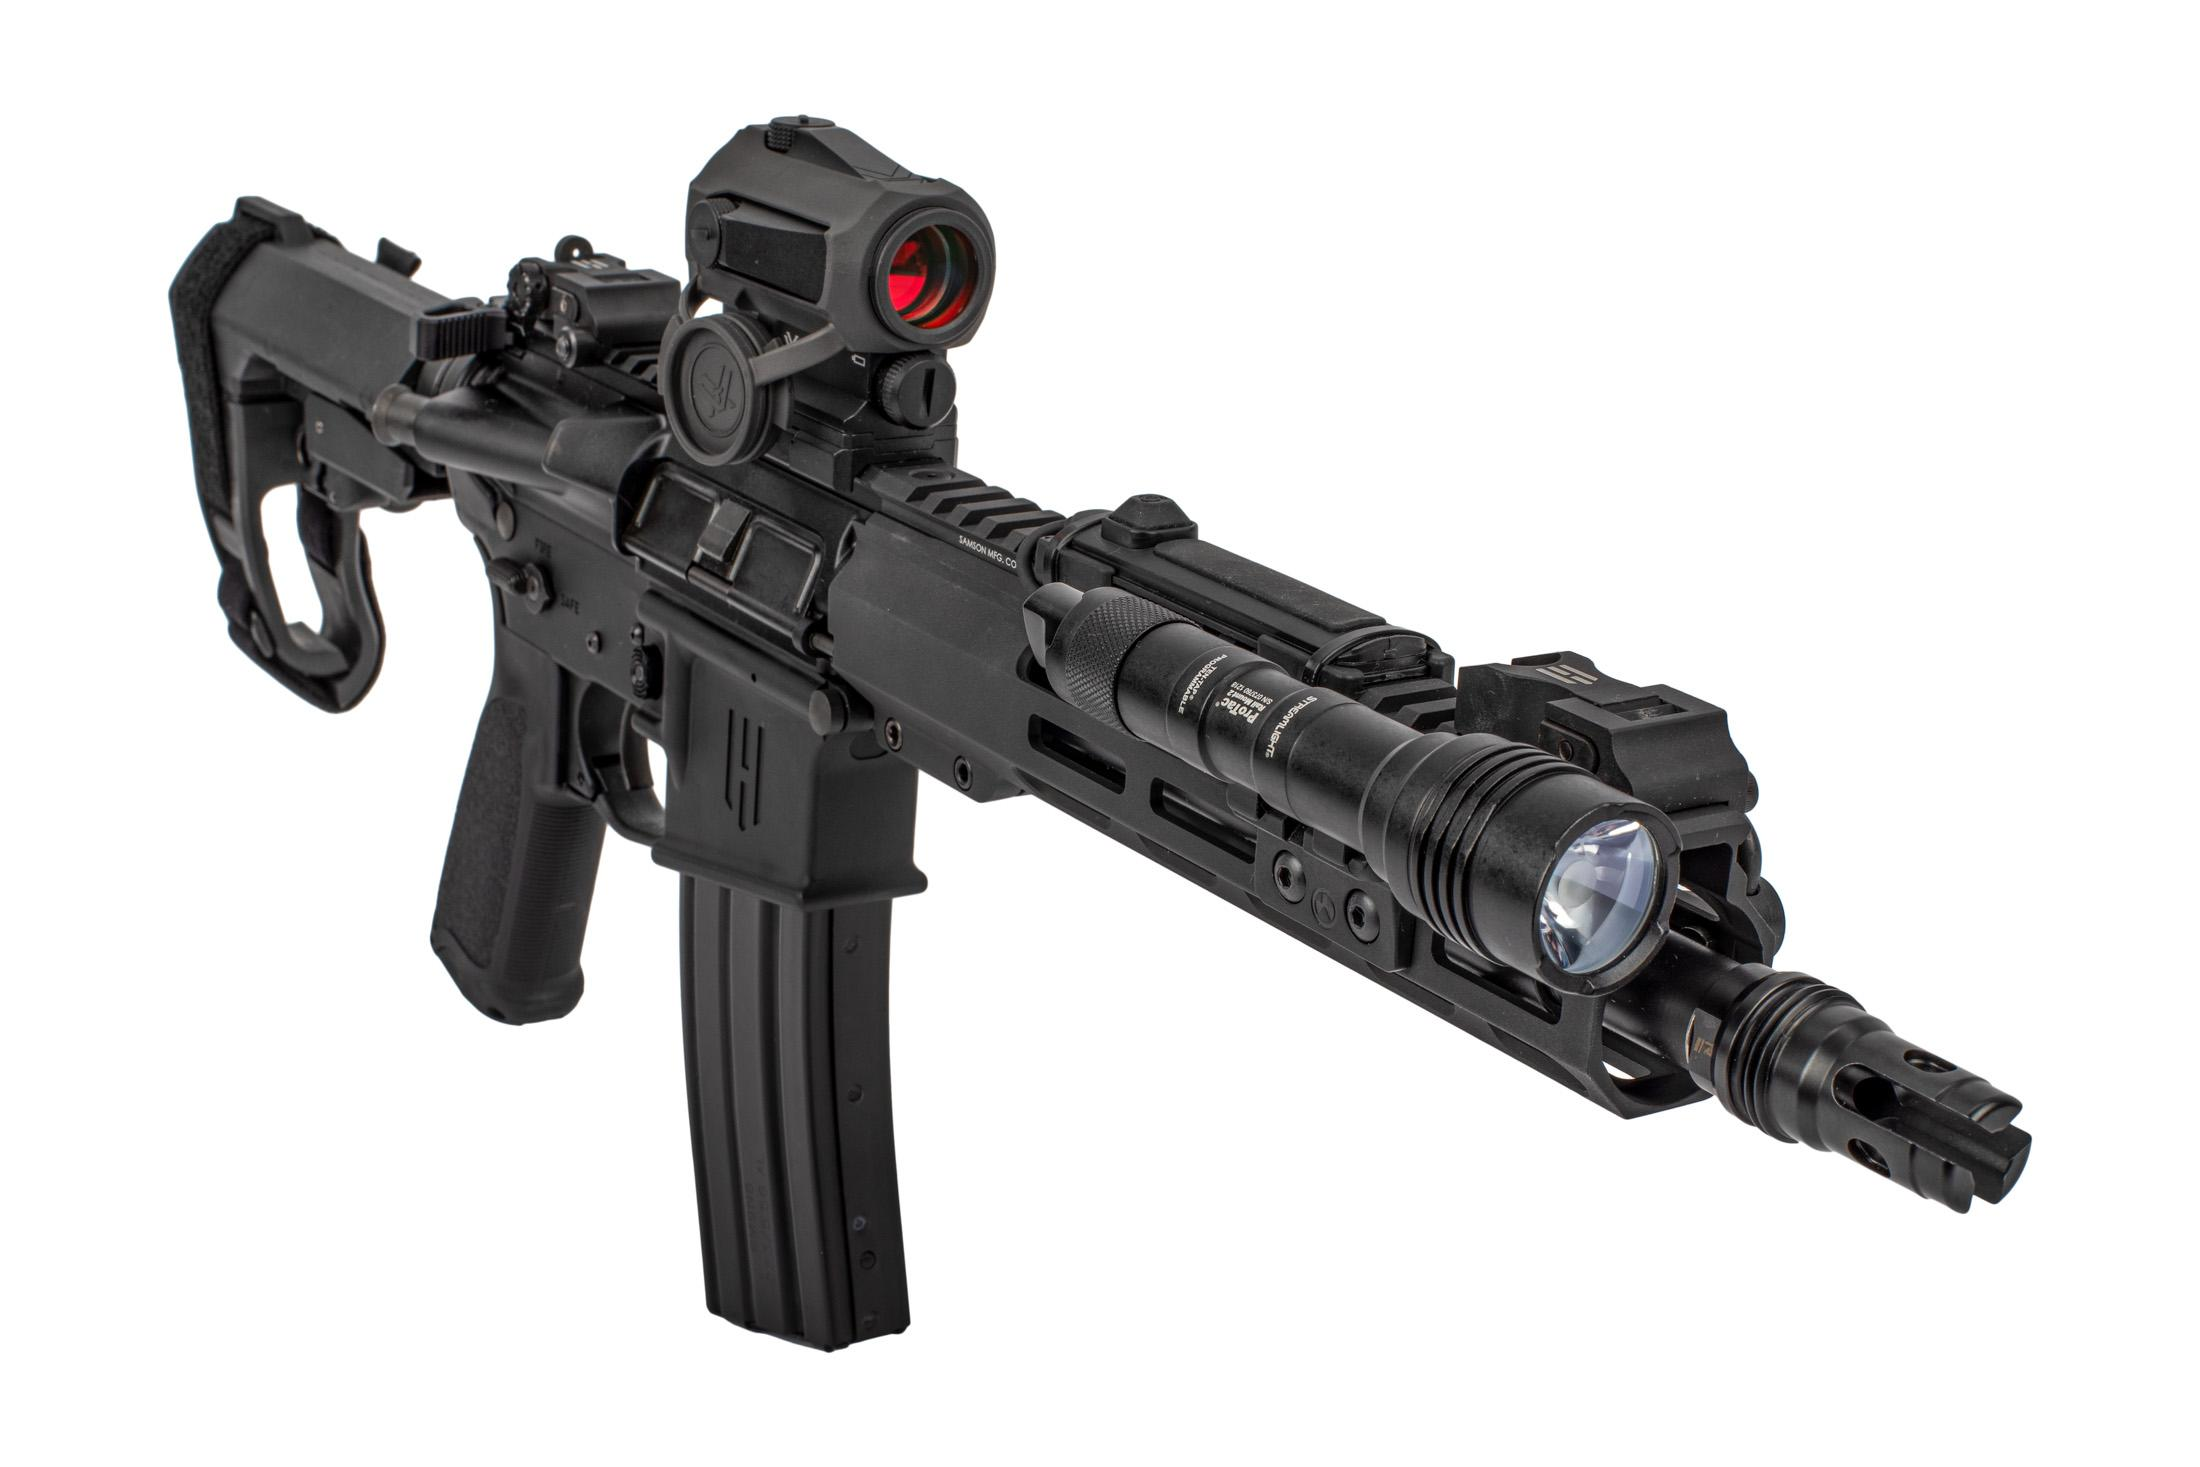 Head Down OTG AR15 Pistol Package features a suppressor mount flash hider